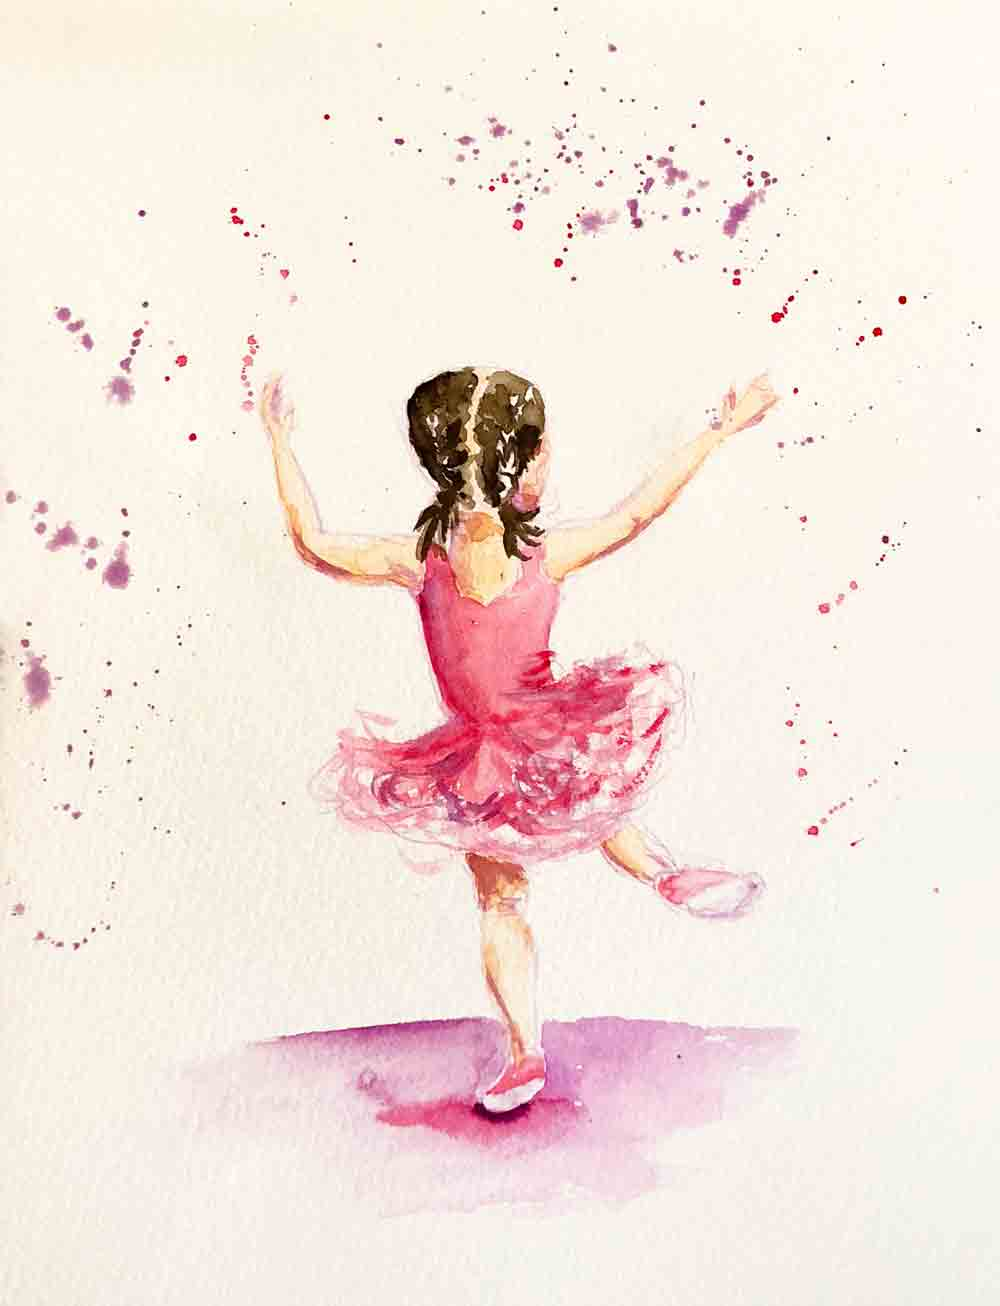 Watercolour-Kids-5-Dance-like-no-one-is-watching-photo-kw.jpg